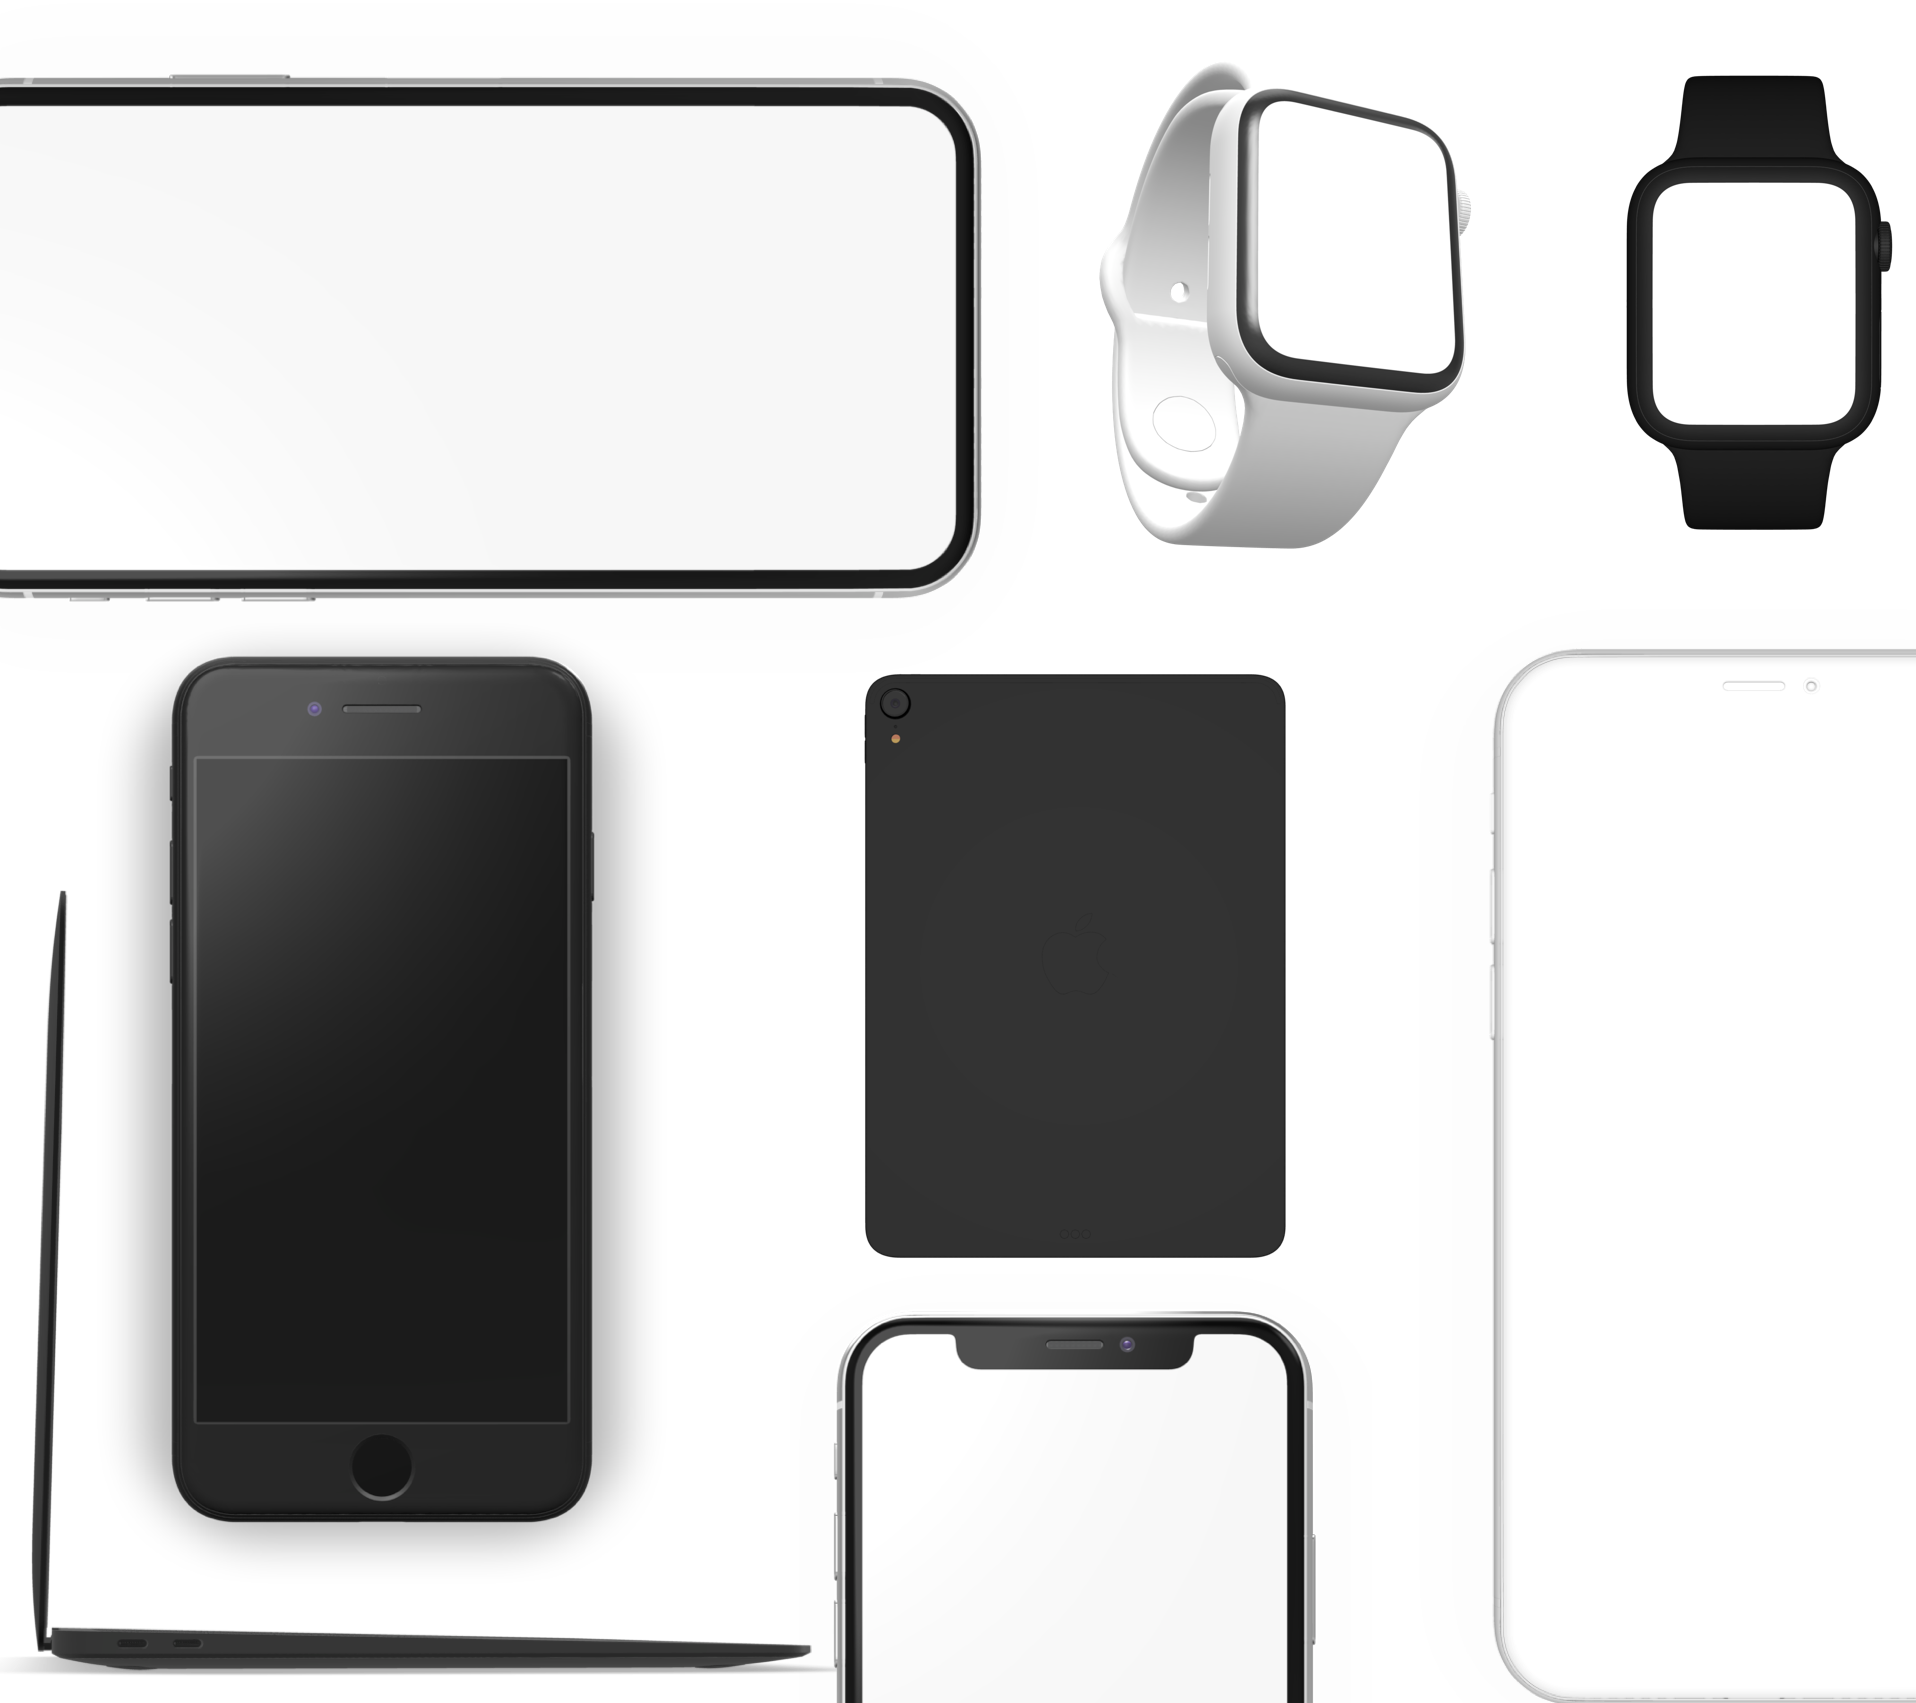 A set of mockups, including phones, watches, laptop and clay